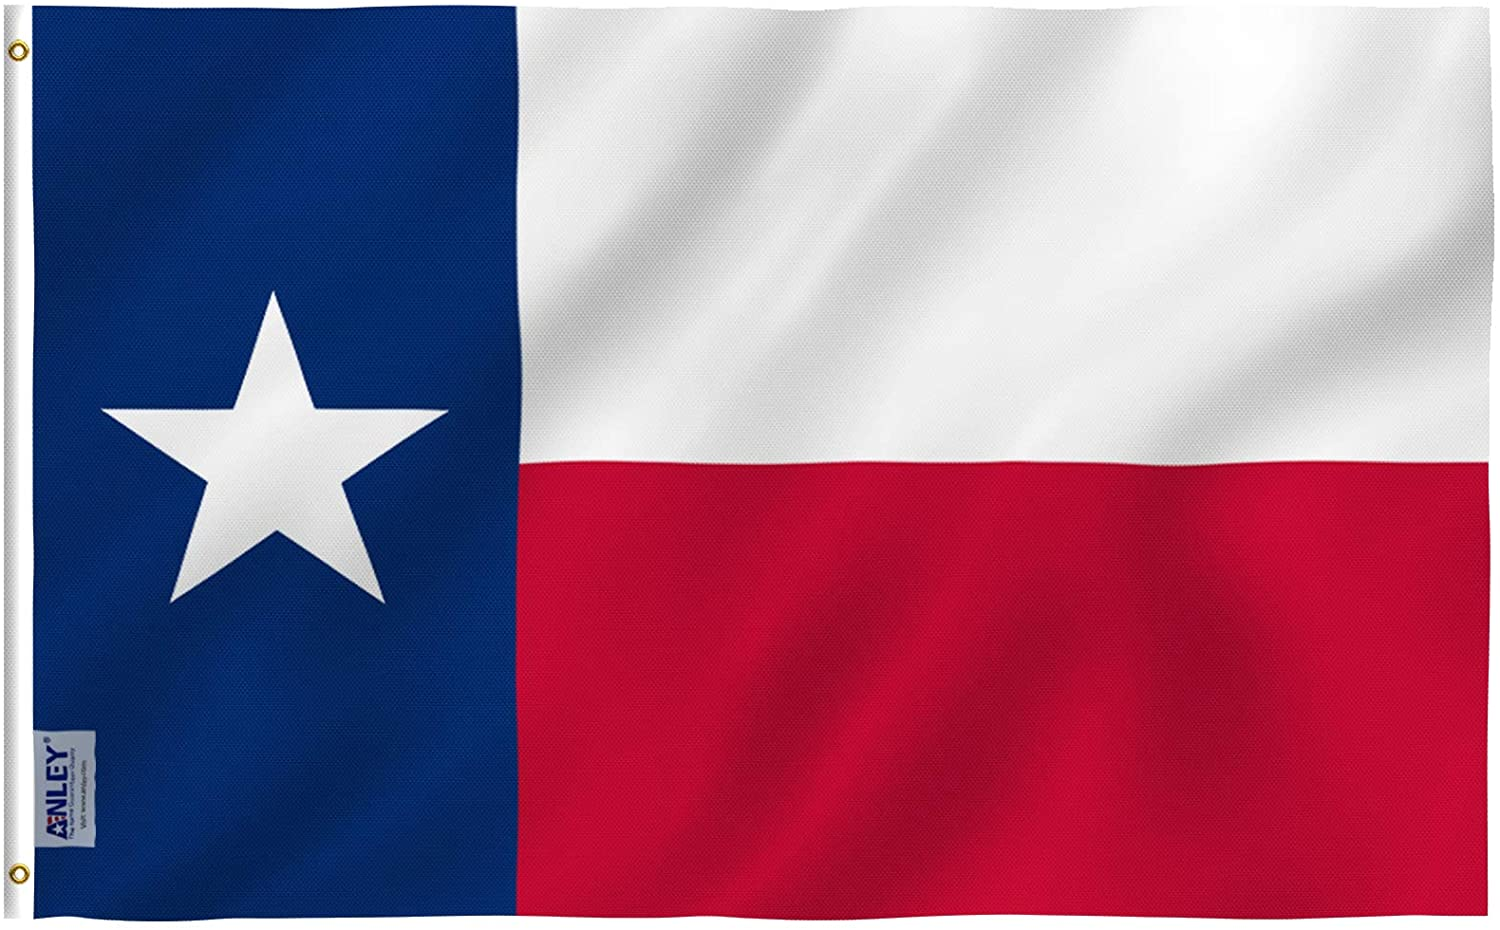 Anley Fly Breeze 3x5 Foot Texas State Flag - Vivid Color and UV Fade Resistant - Canvas Header and Double Stitched - Texas State Flags Polyester with Brass Grommets 3 X 5 Ft